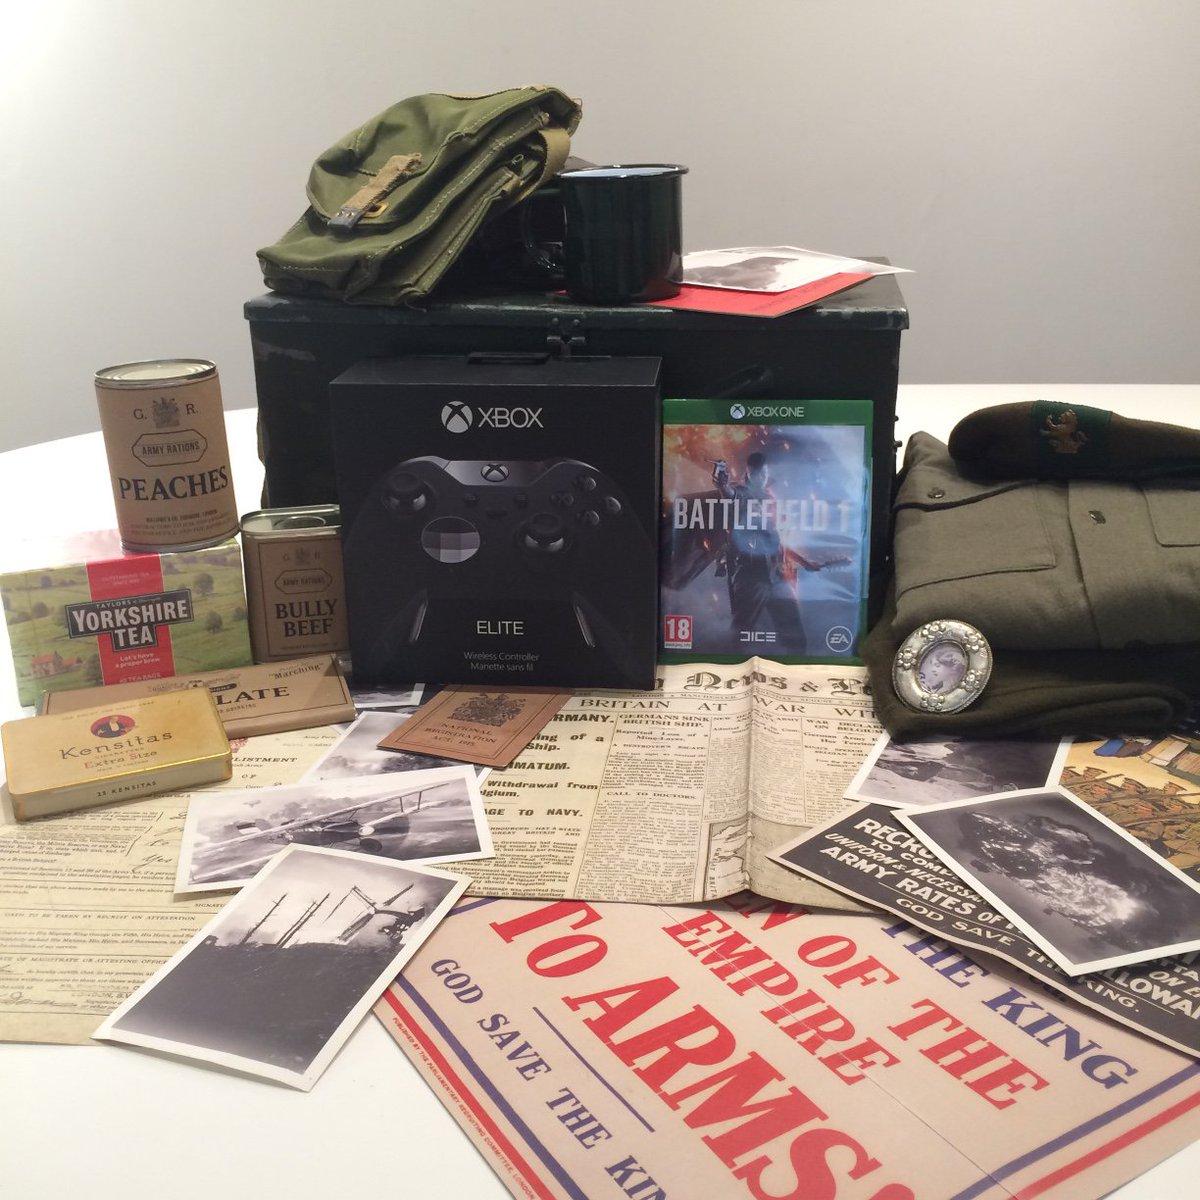 RT + Follow for your chance to WIN a great big bundle of #Battlefield1 gaming goodies and an Xbox Elite controller 🎮 https://t.co/lAzKijo7Kn